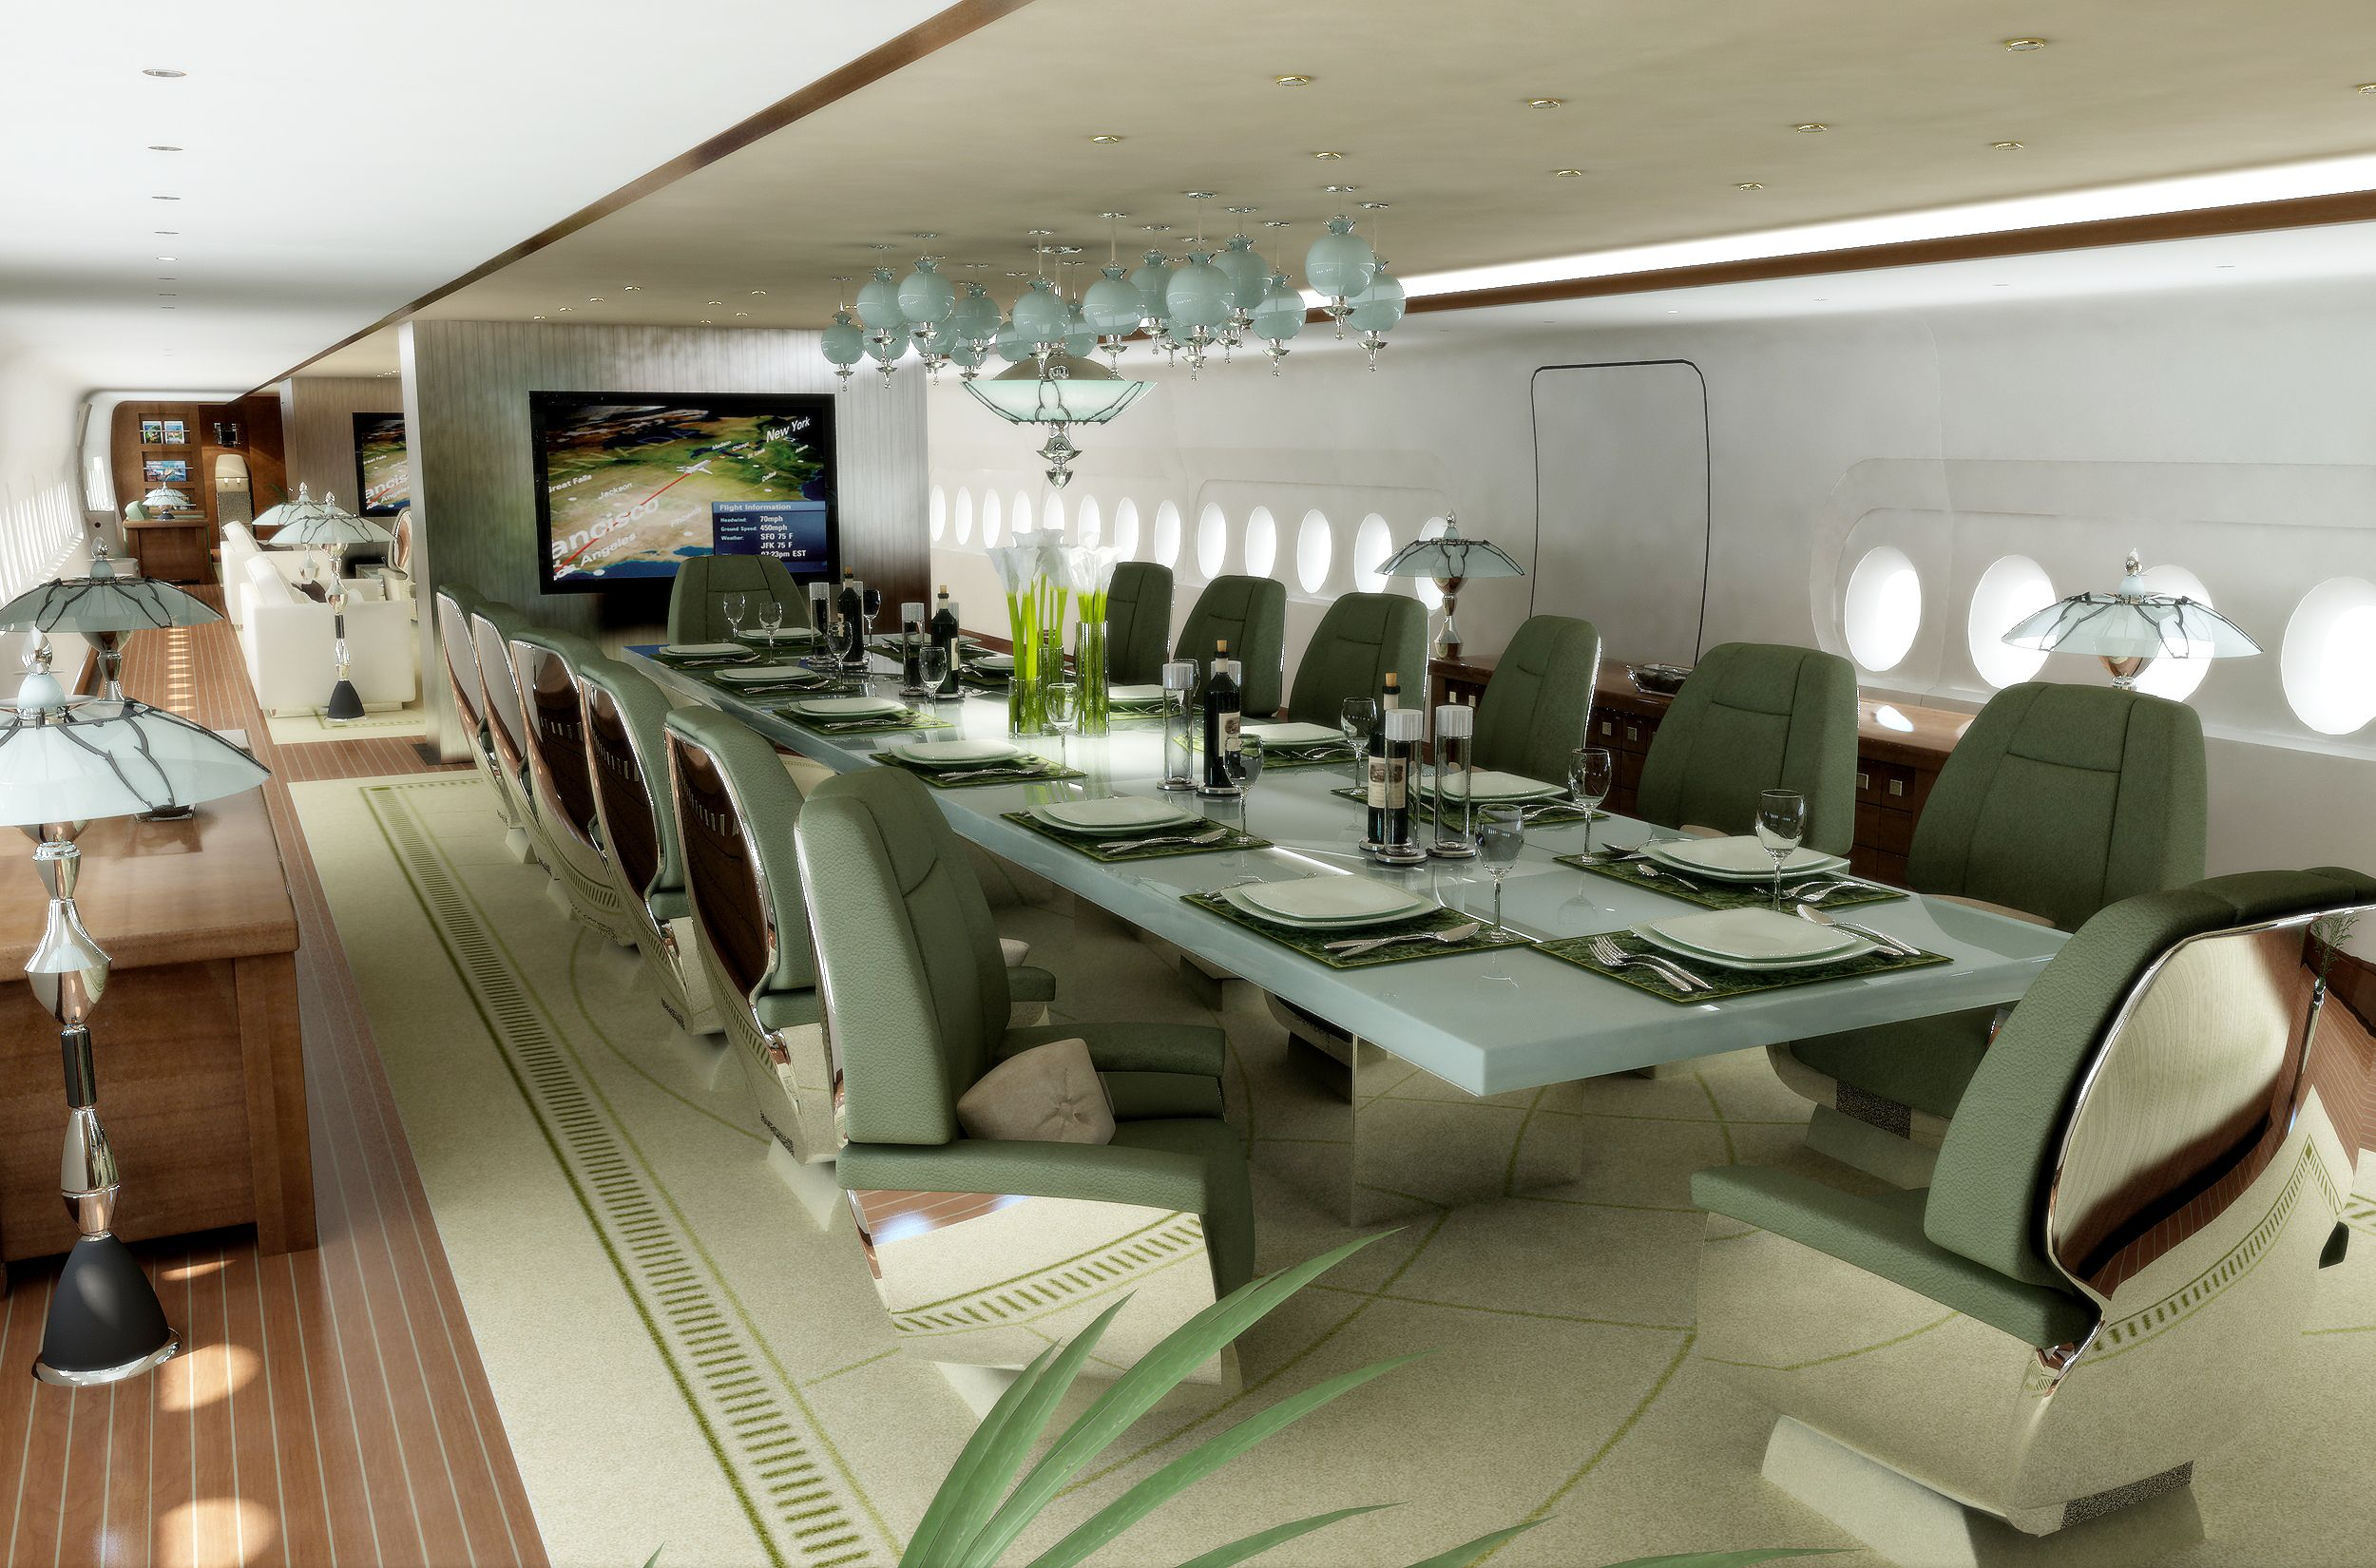 Airbus A380 800 Dining Room By Edse Doret